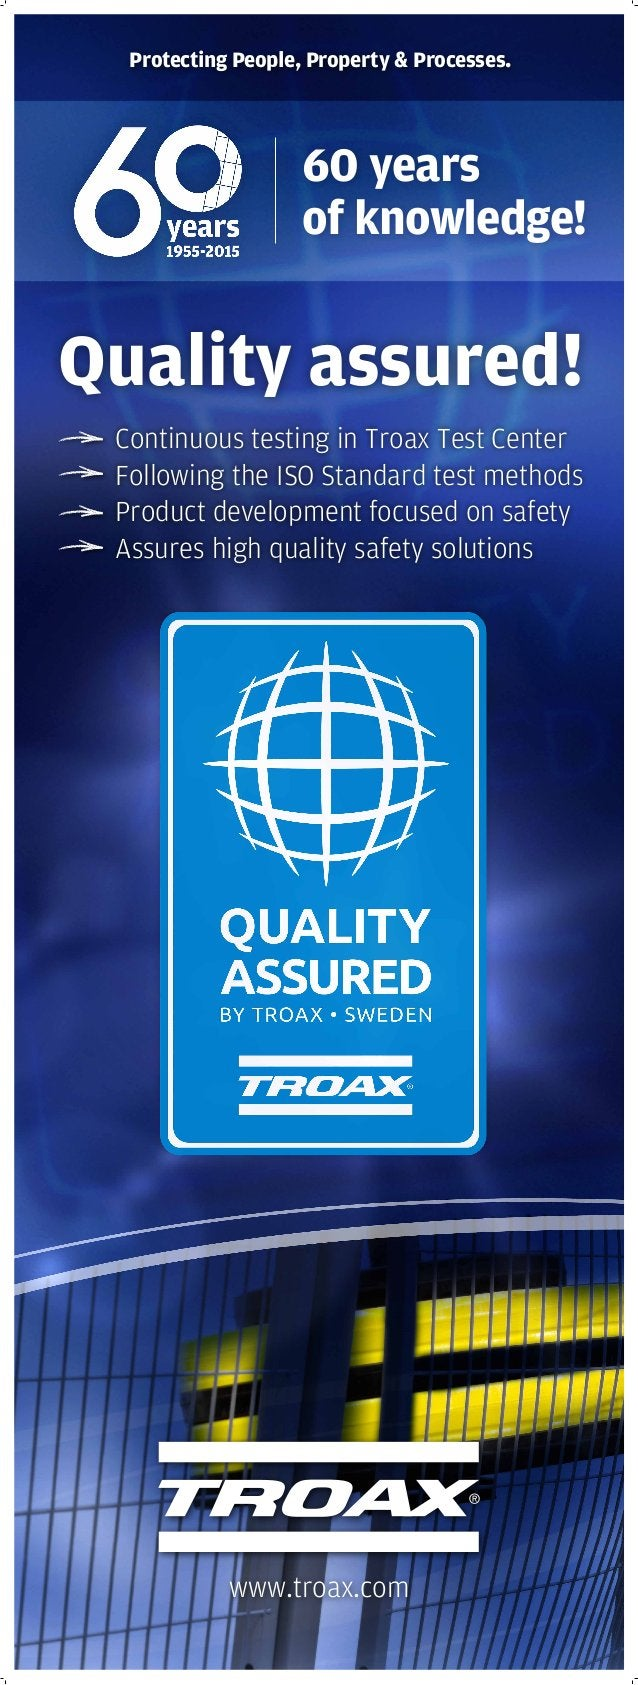 www.troax.com 60 years of knowledge! Protecting People, Property & Processes. Quality assured! Continuous testing in Troax...